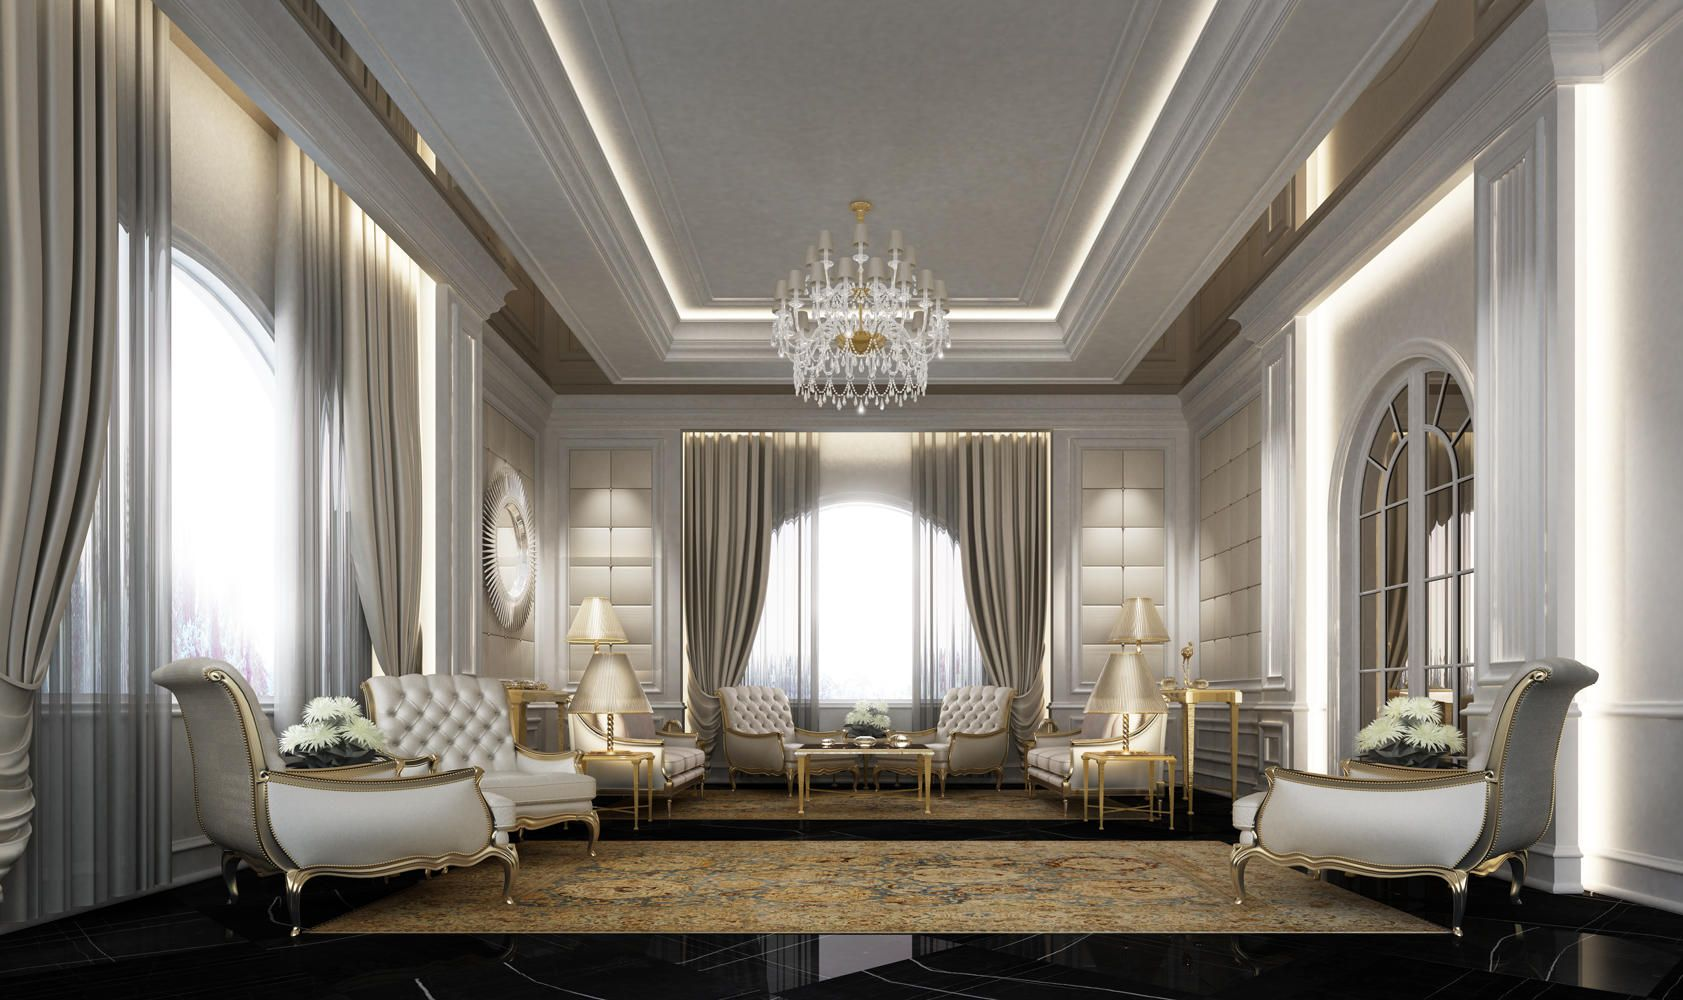 Arabic majlis designs ions design interior design for Luxury interior design